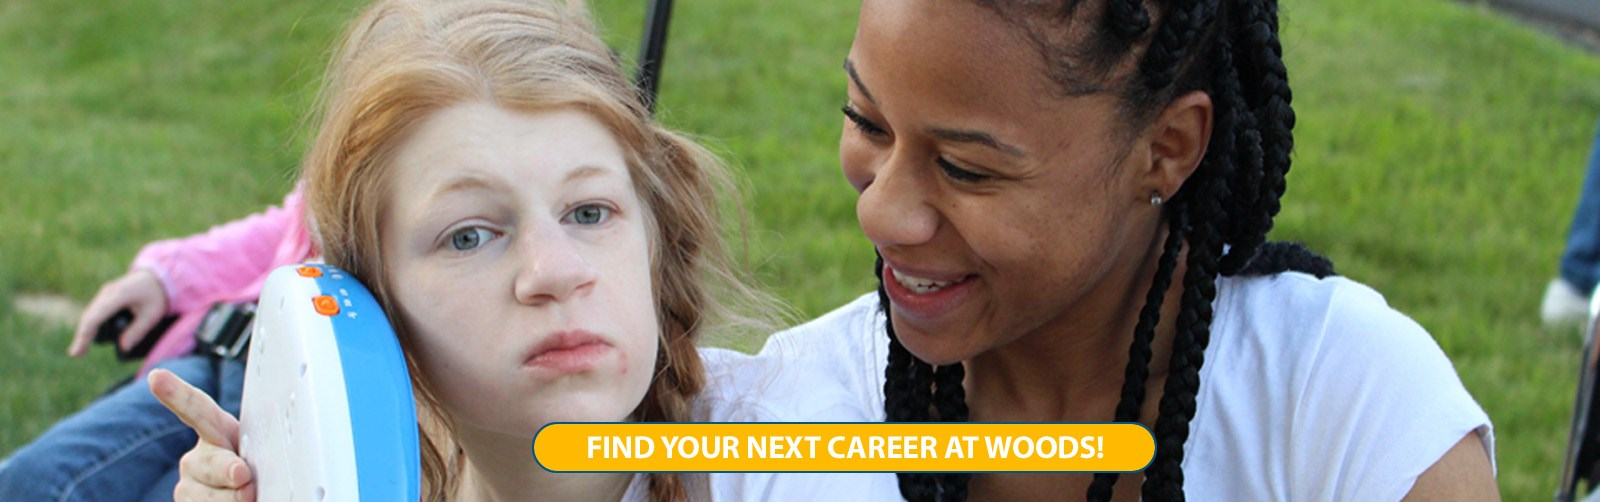 Find Your Next Career at Woods NEW